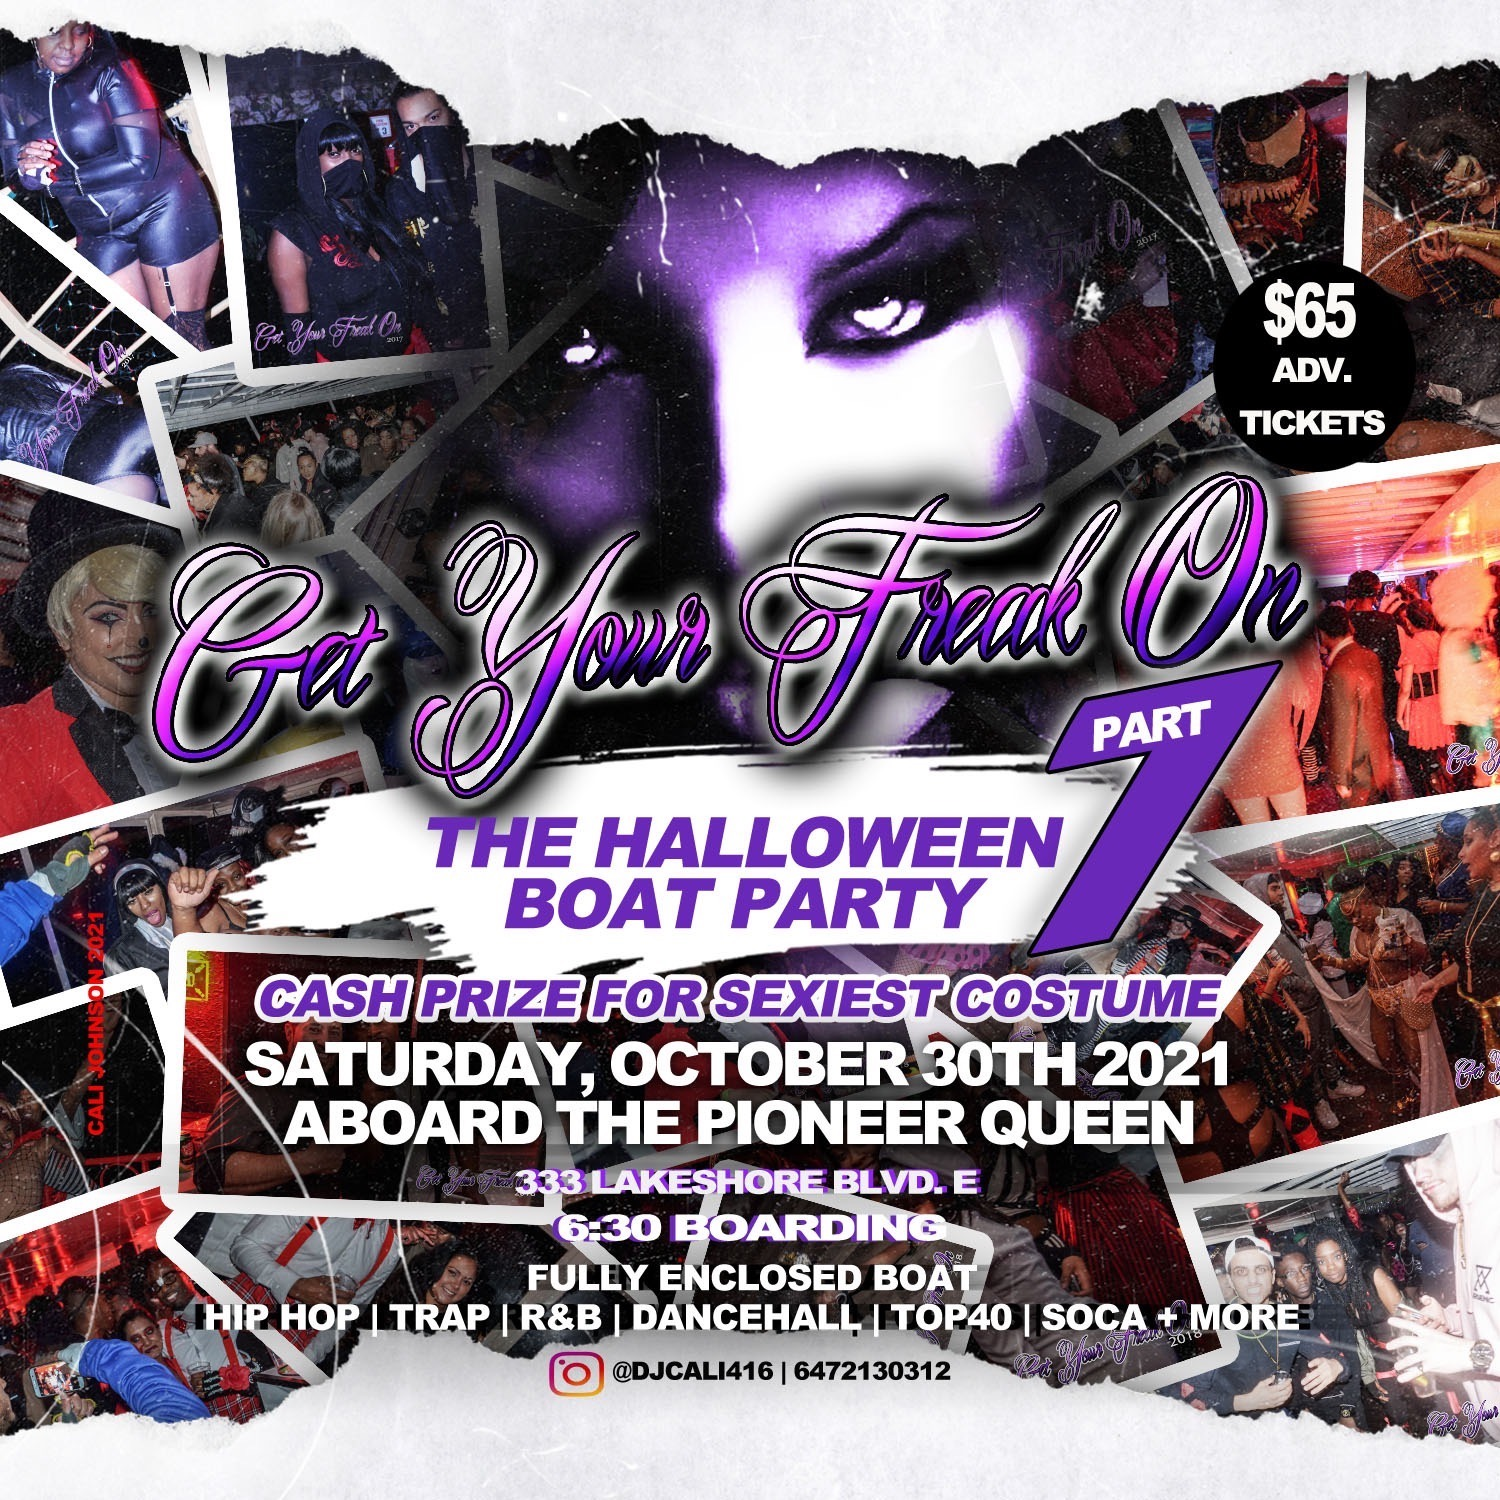 GET YOUR FREAK ON 7 (FULLY ENCLOSED BOAT PARTY)